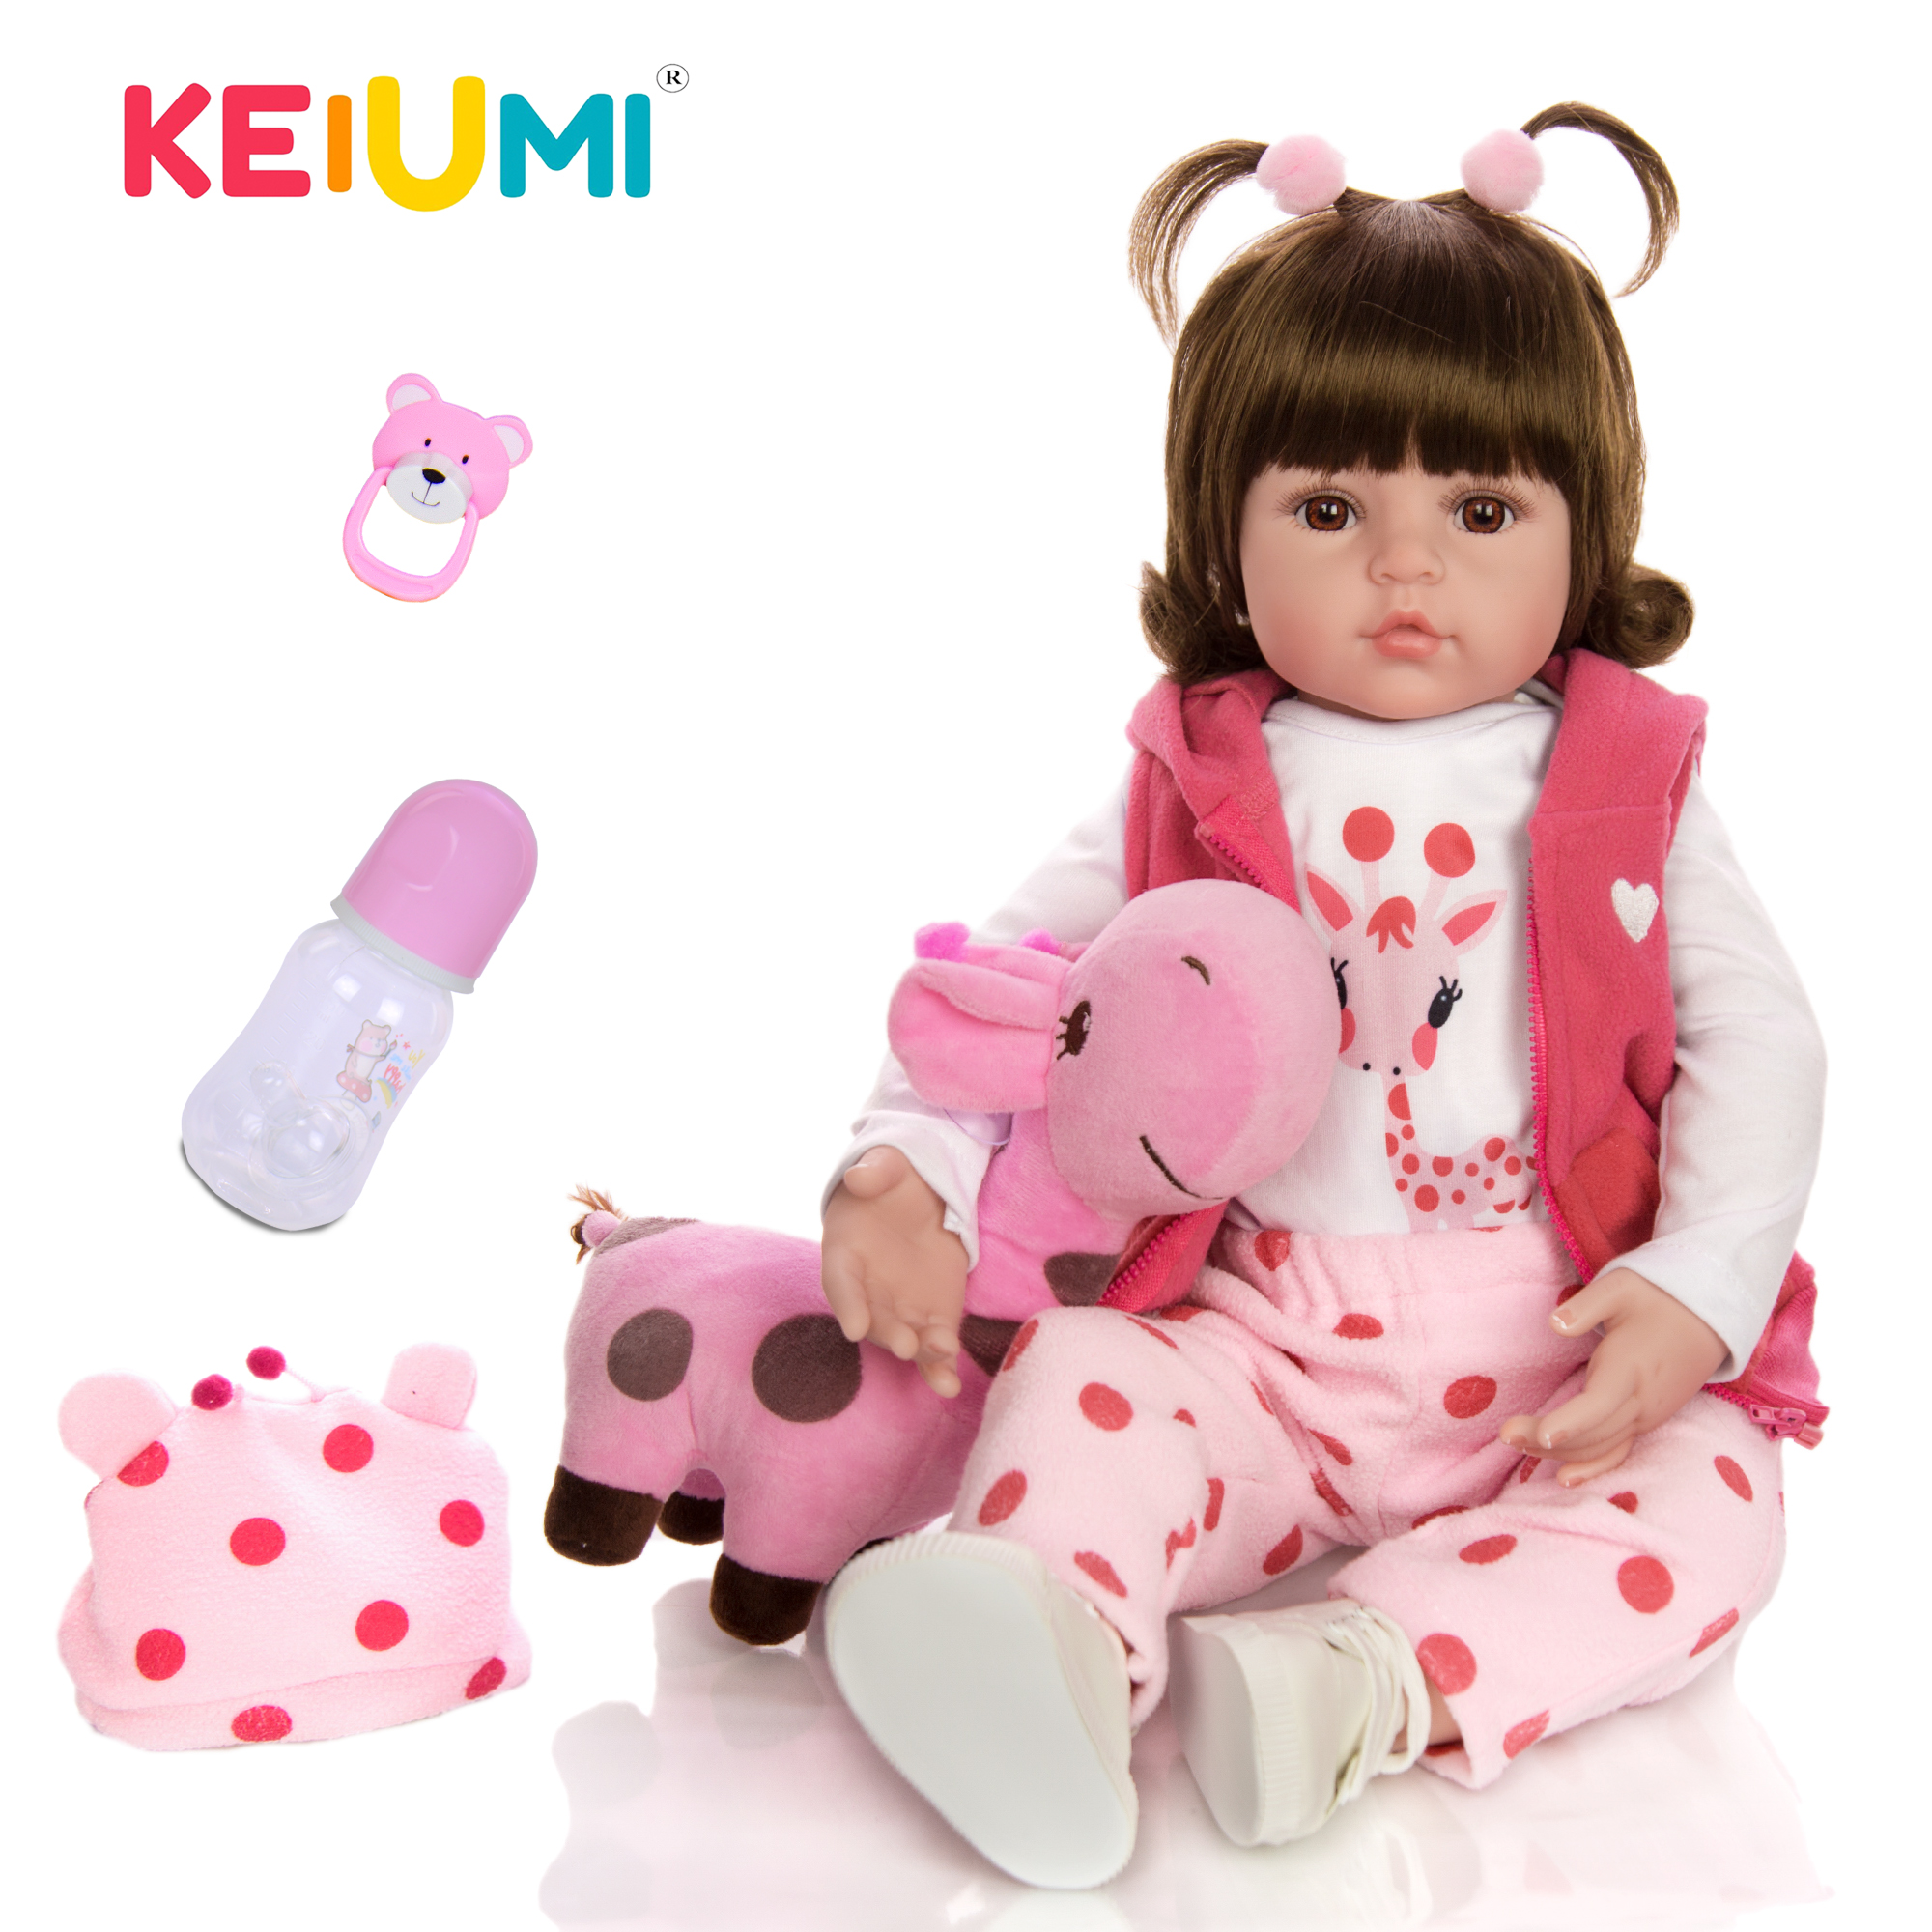 KEIUMI Hot Sale Reborn Baby Doll Toy Cloth Body Stuffed Realistic Baby Doll With Giraffe Toddler